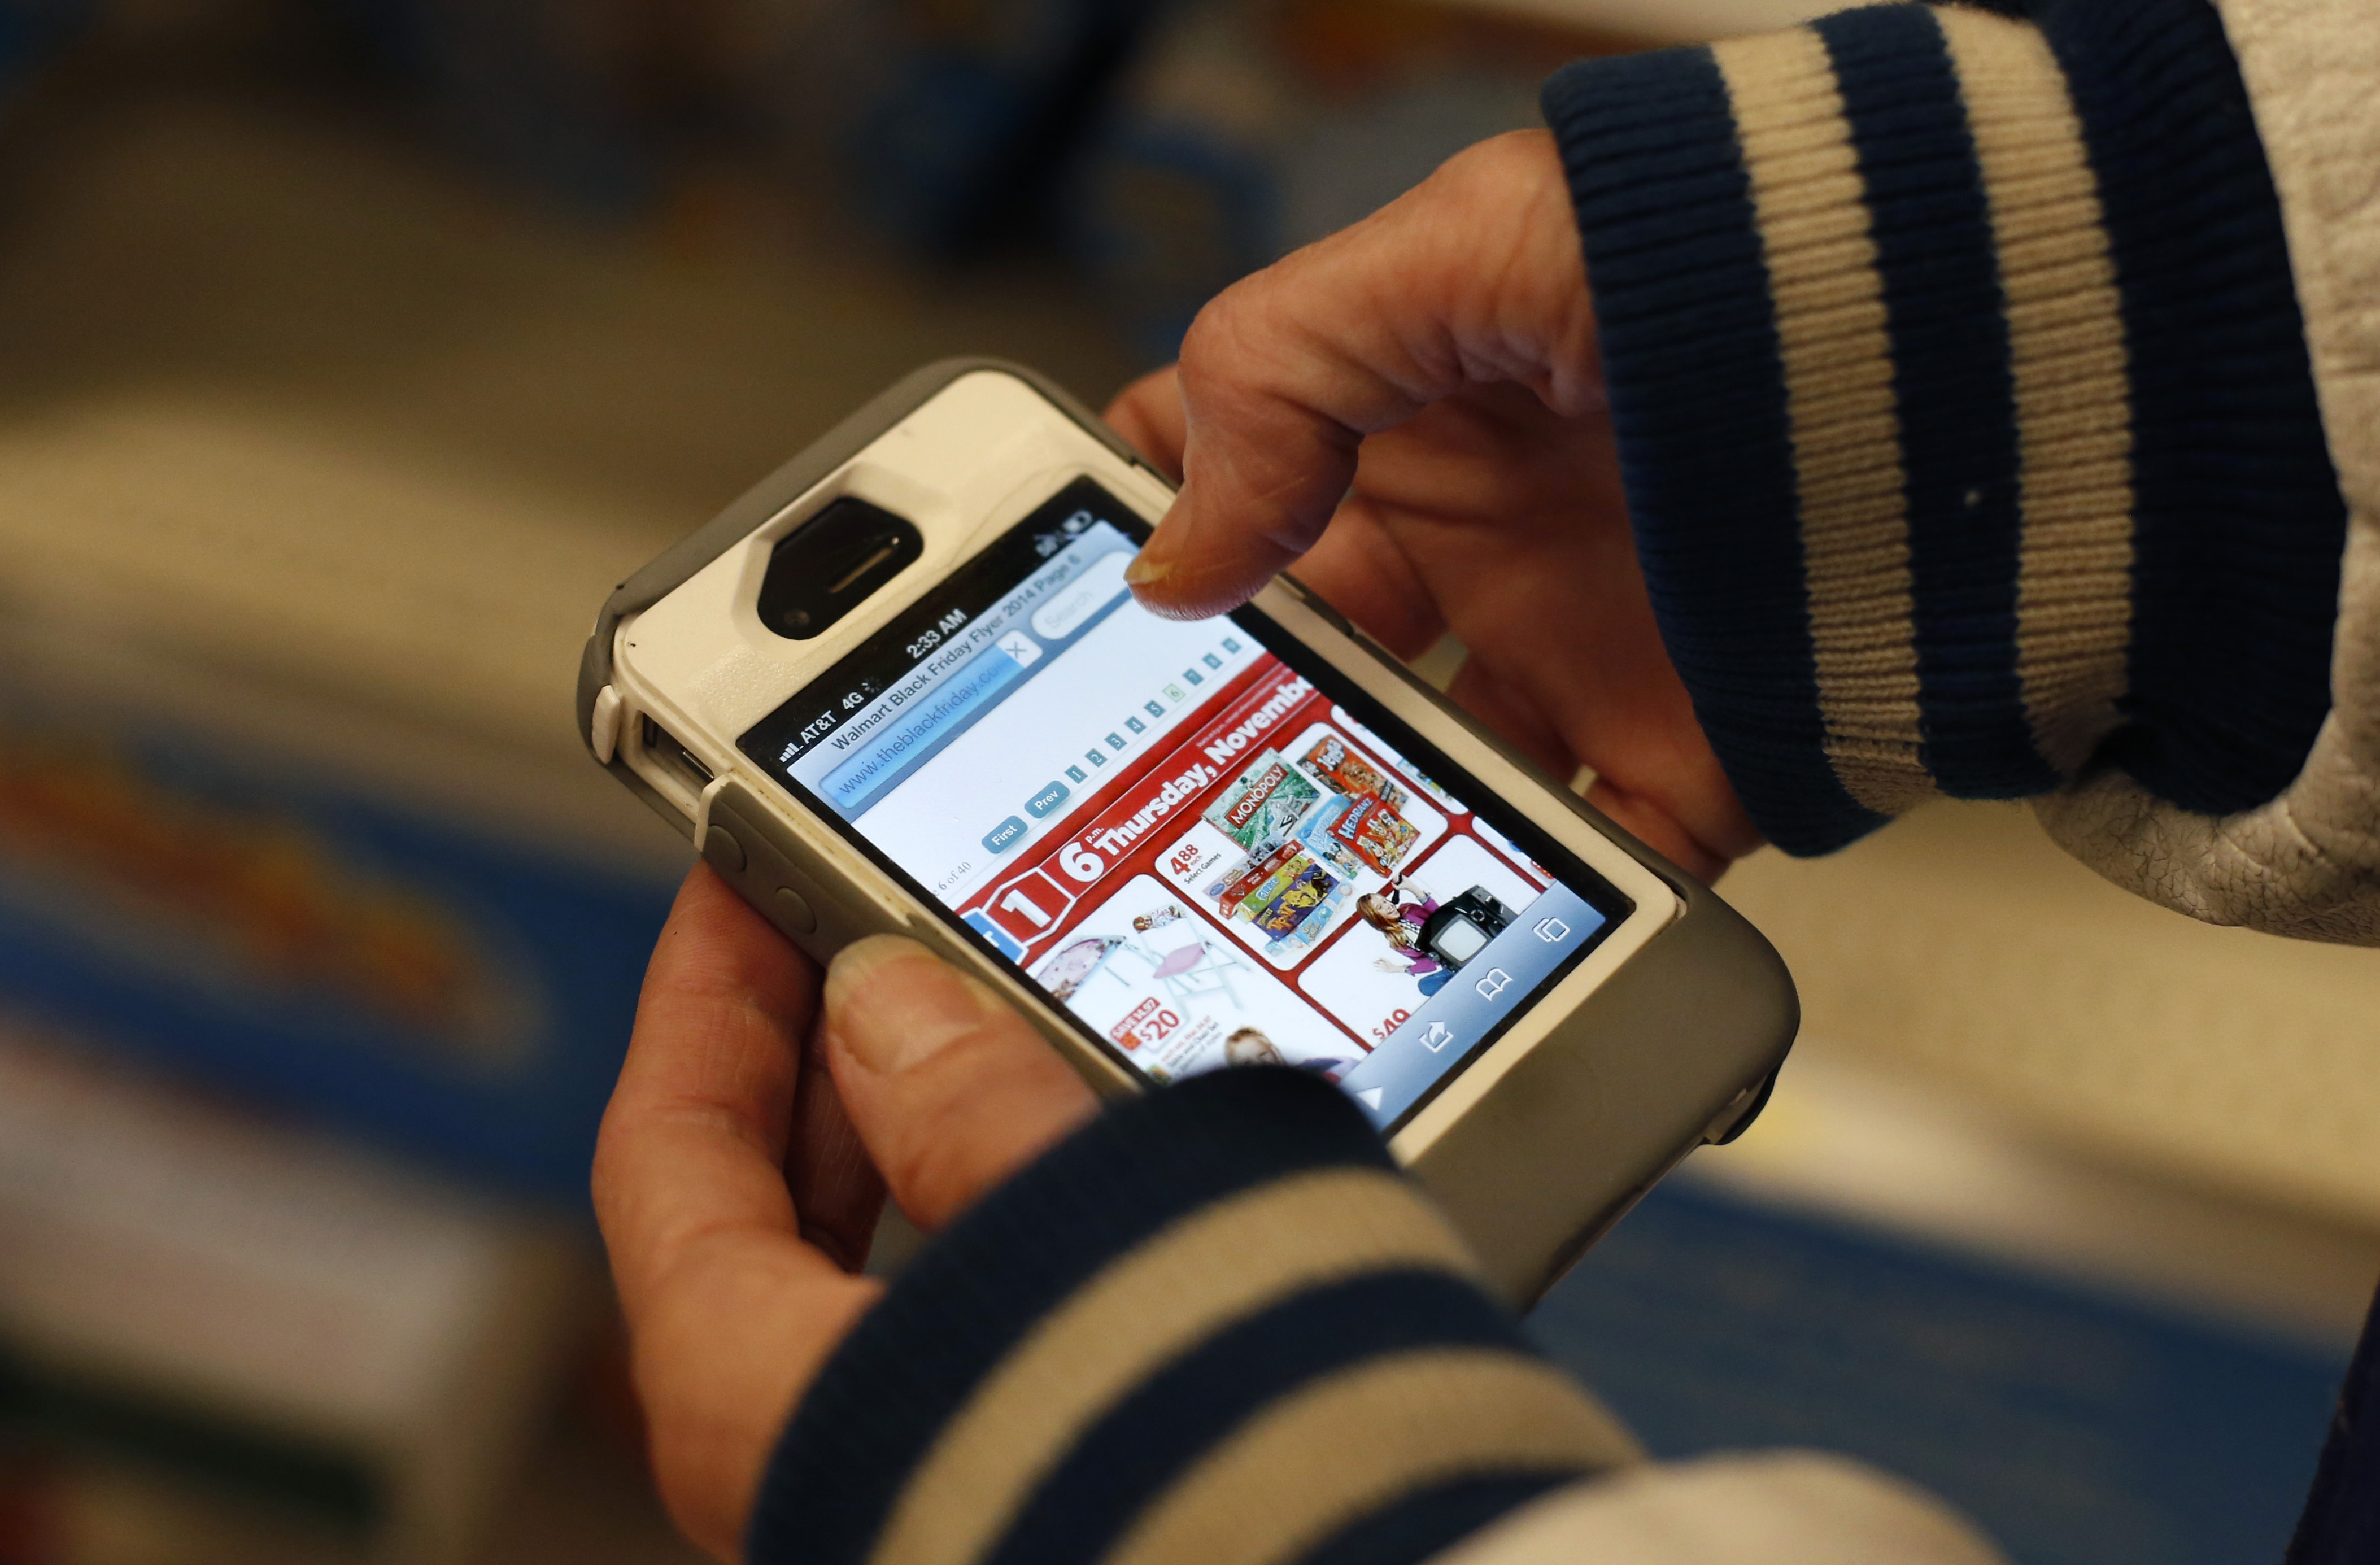 10 favorite apps to start 2015